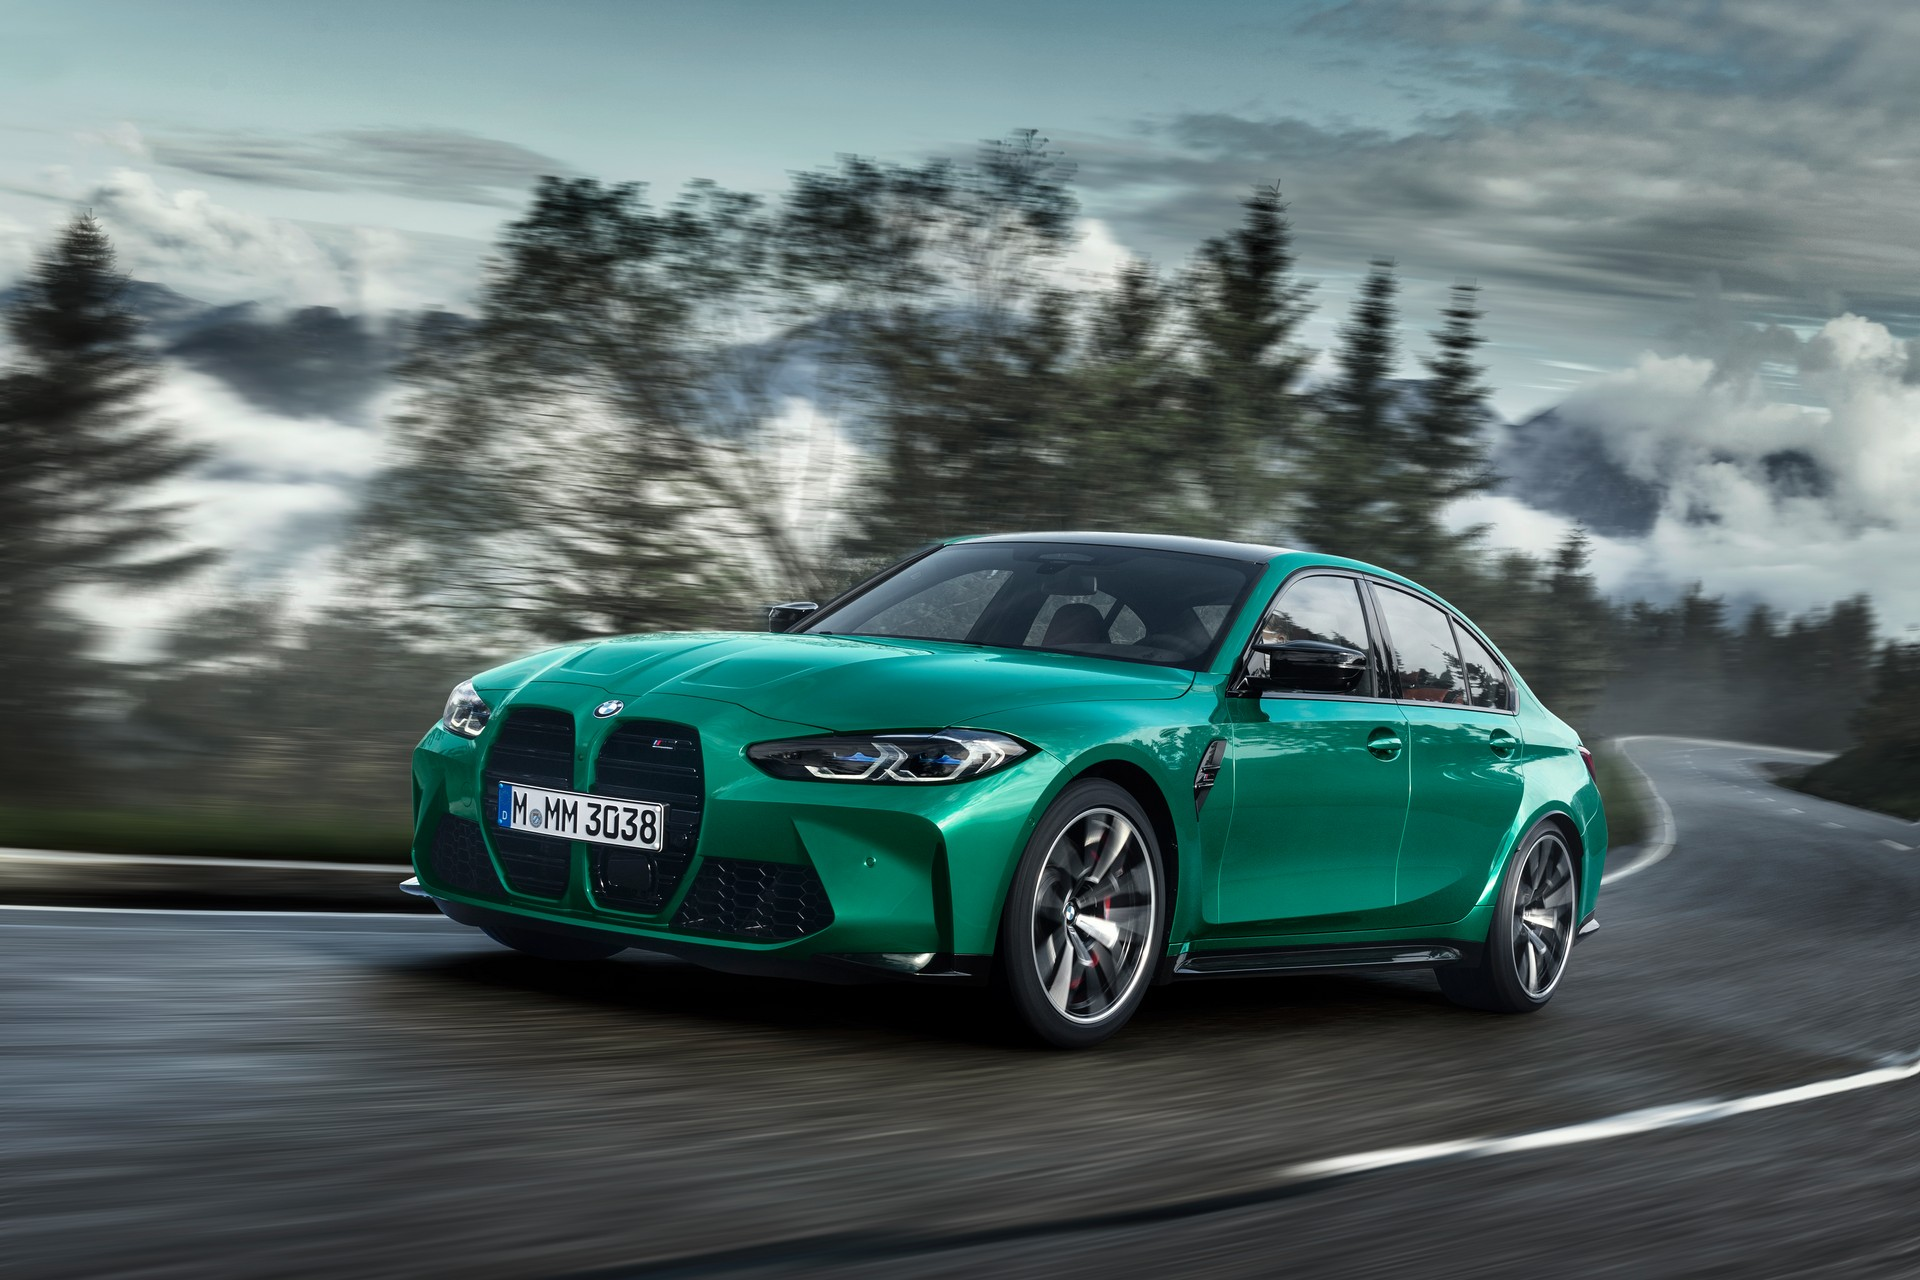 2021-bmw-m3-and-m4-6.jpg